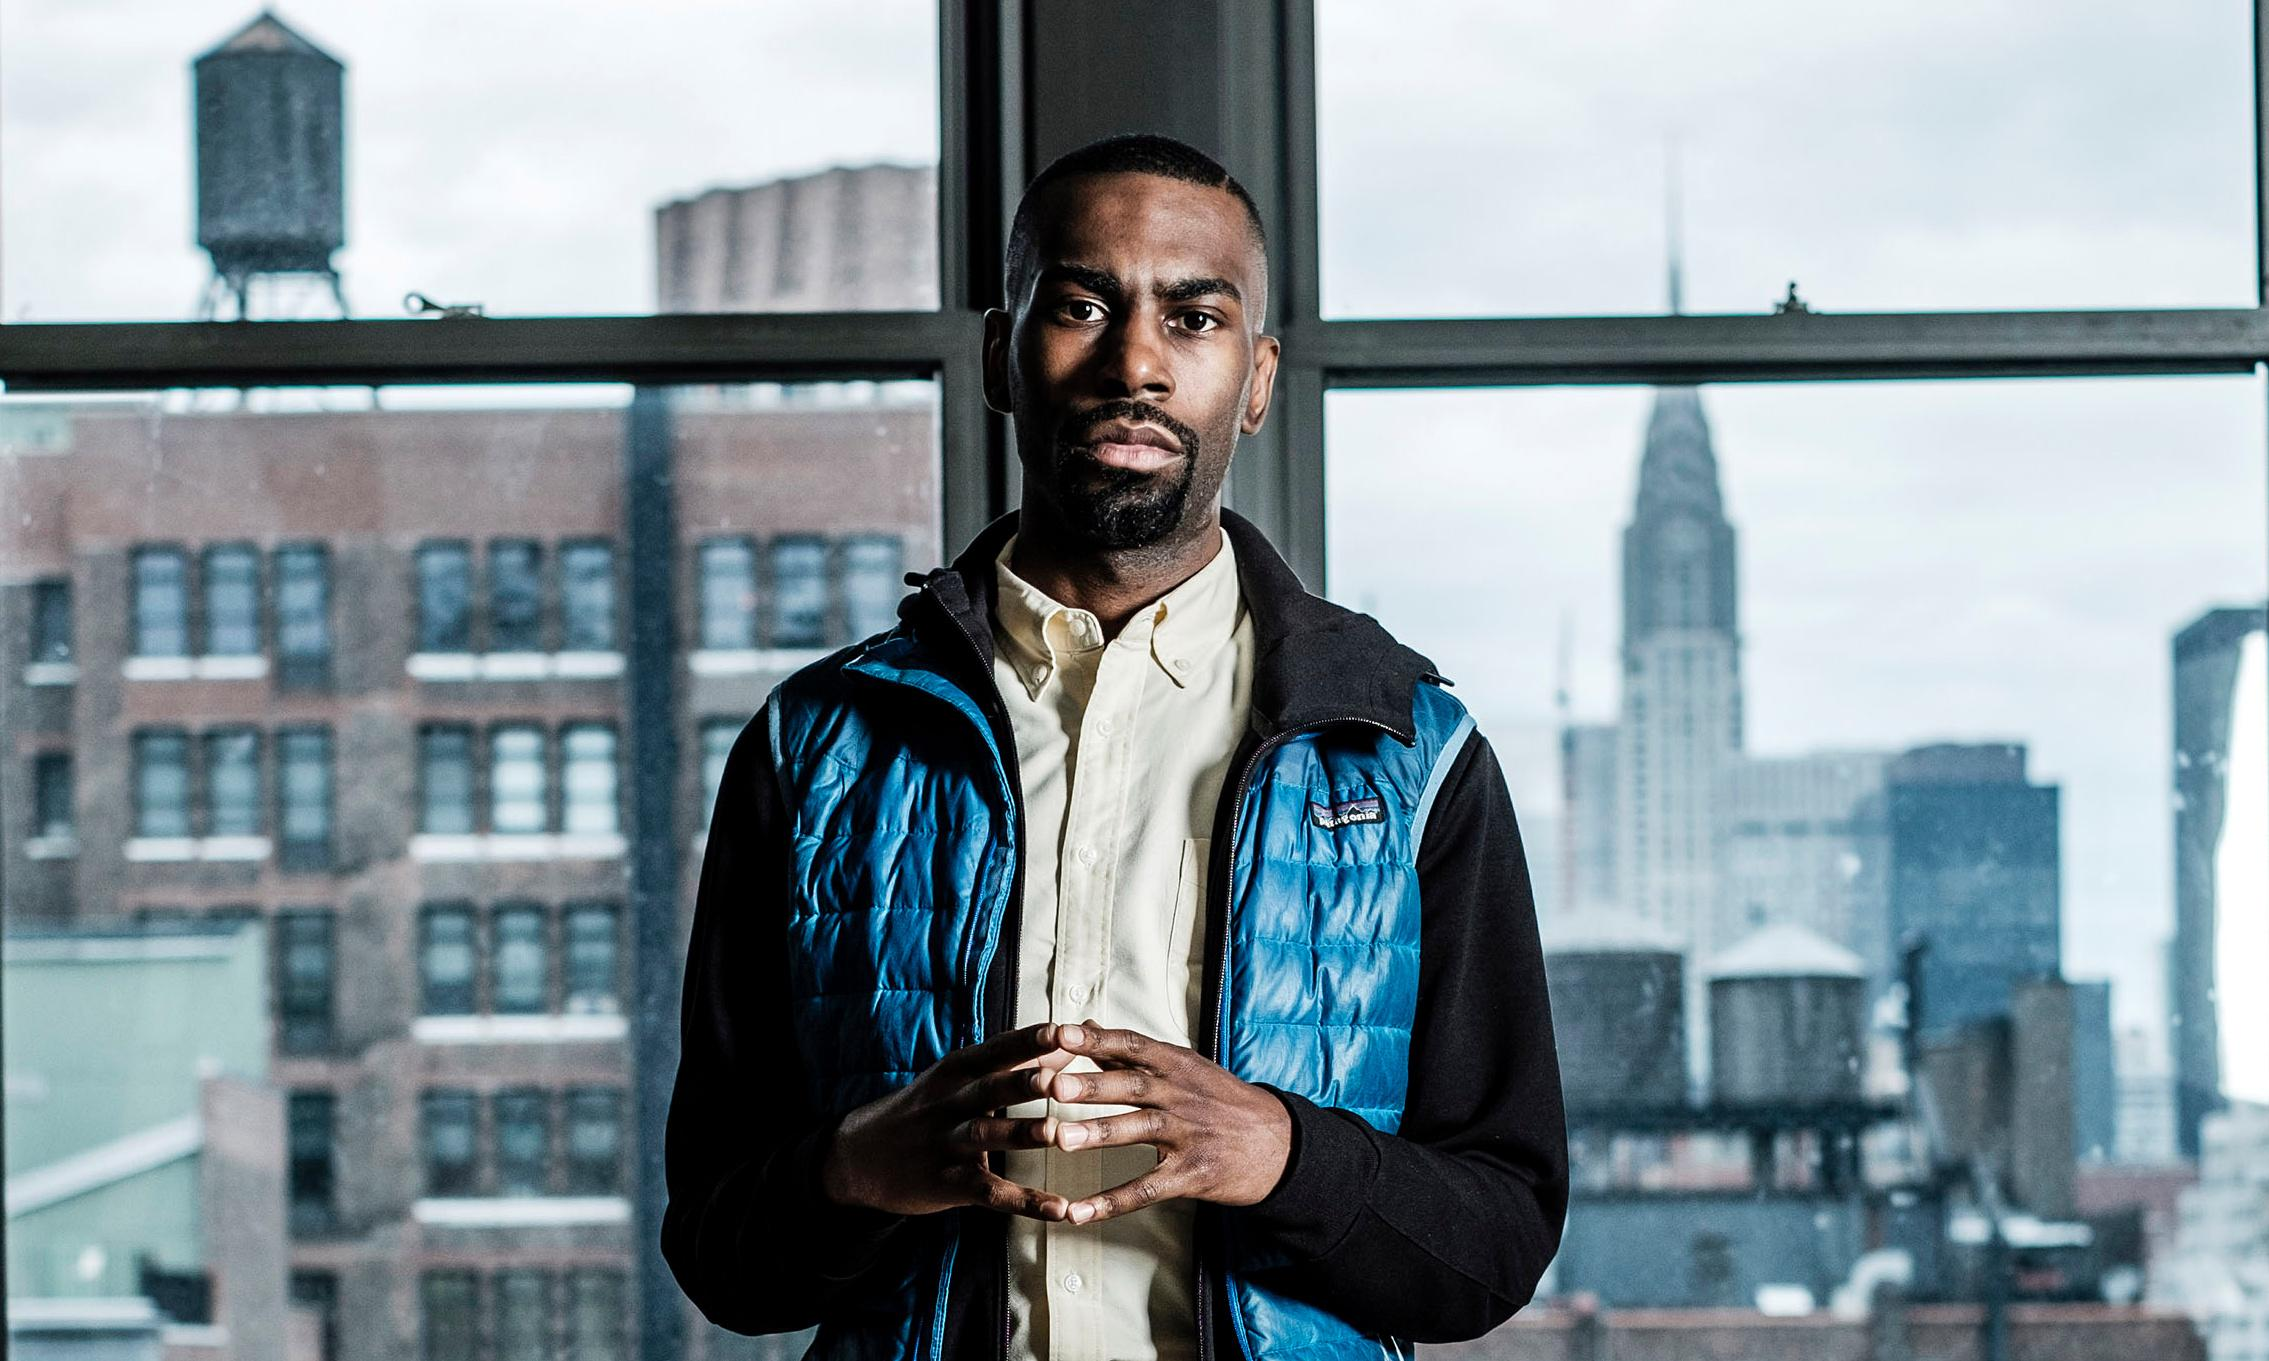 DeRay Mckesson on Black Lives Matter: 'It changed the country'